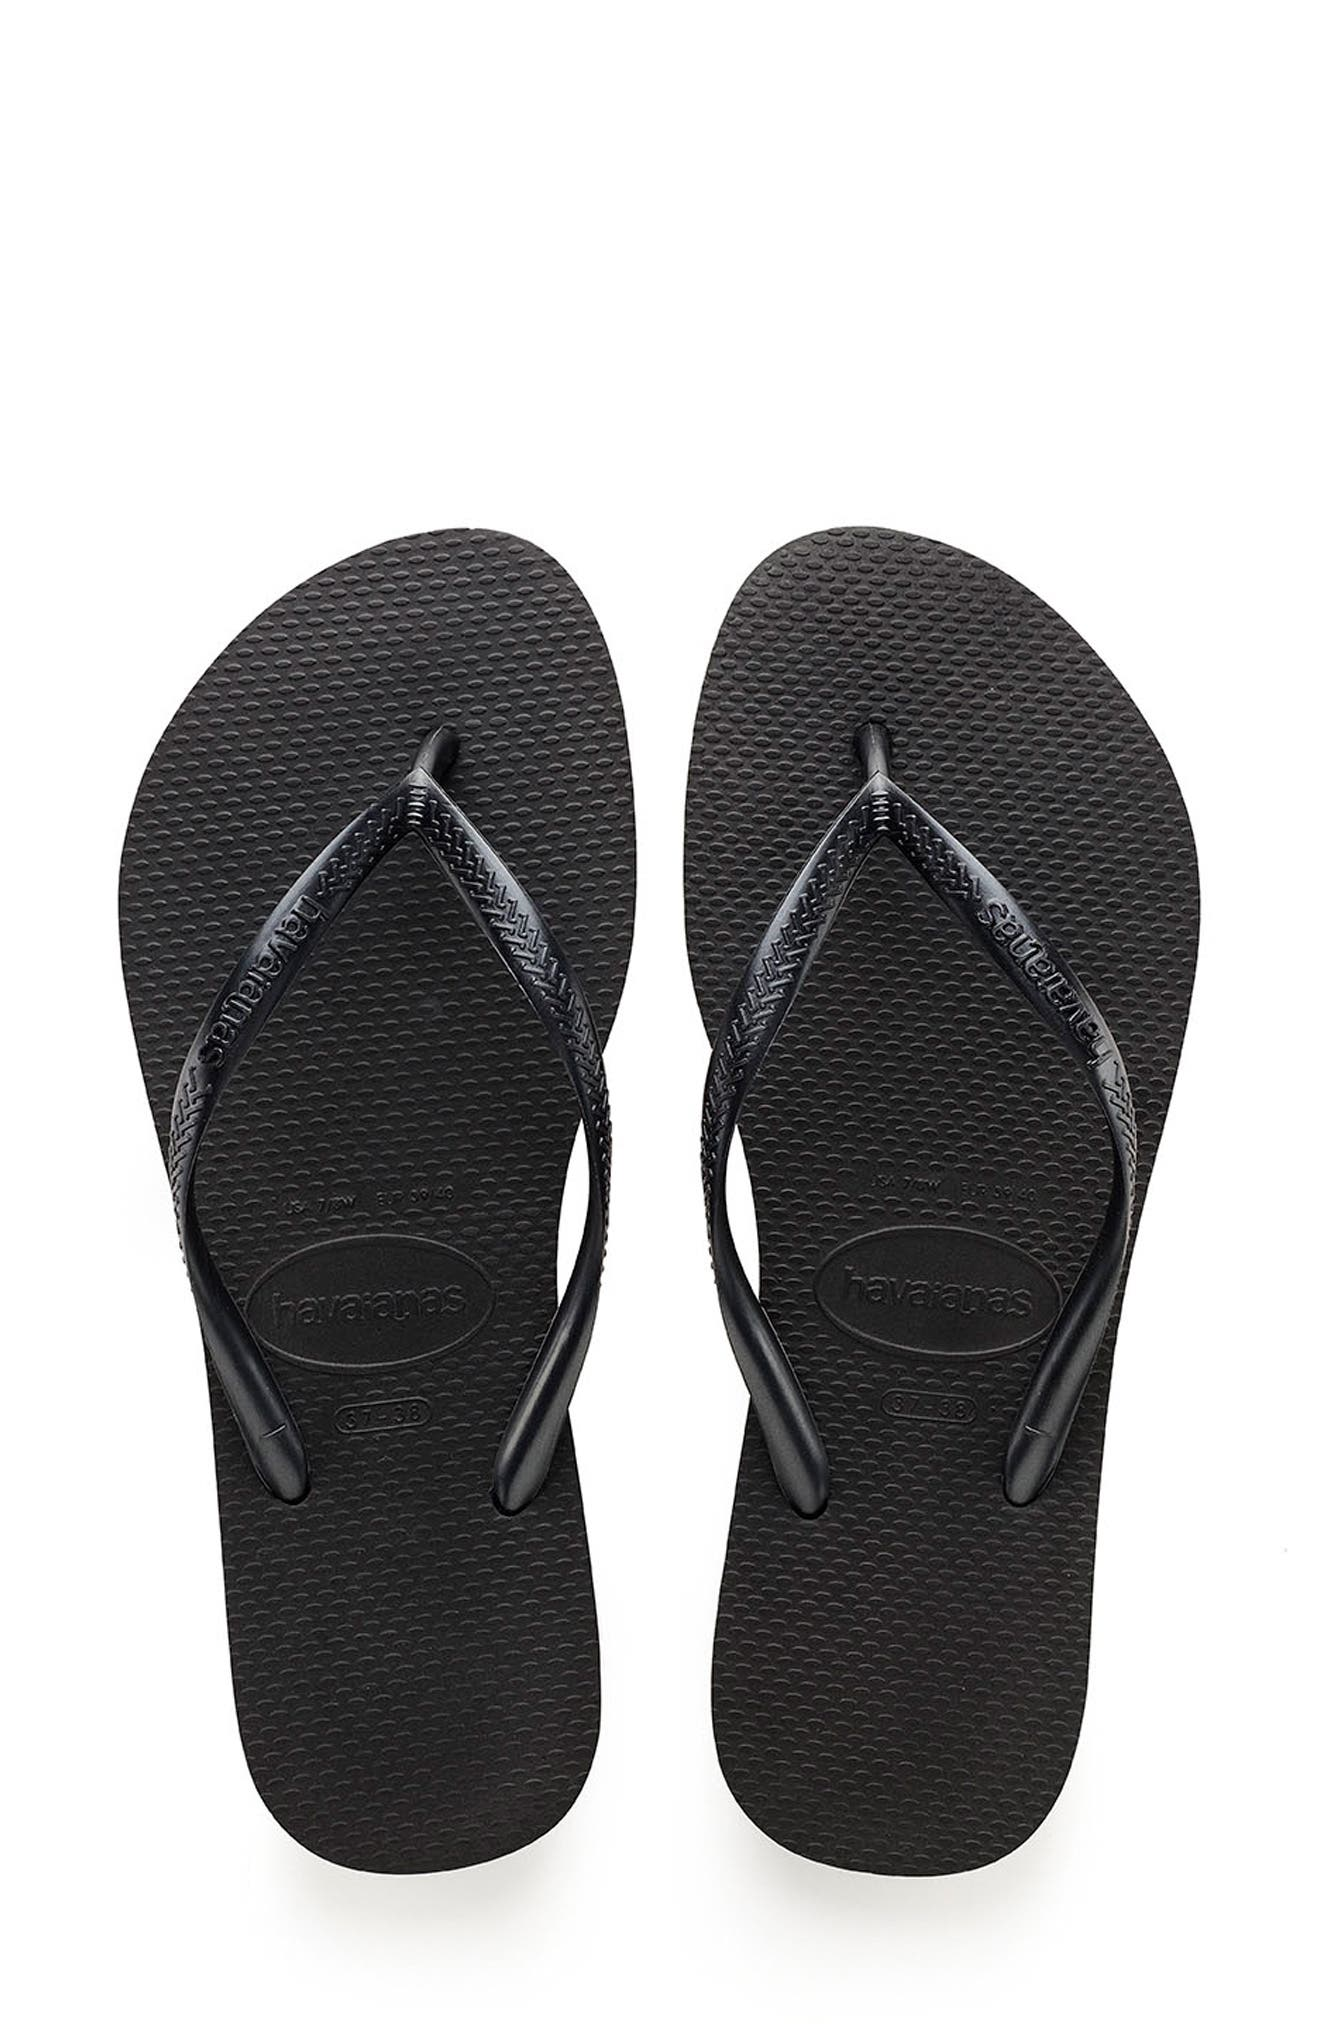 A classic all-rubber flip-flop features an updated slim strap and a cushy footbed that delivers plenty of beach-ready style. Style Name: Havaianas Slim Flip Flop (Women). Style Number: 180007. Available in stores.